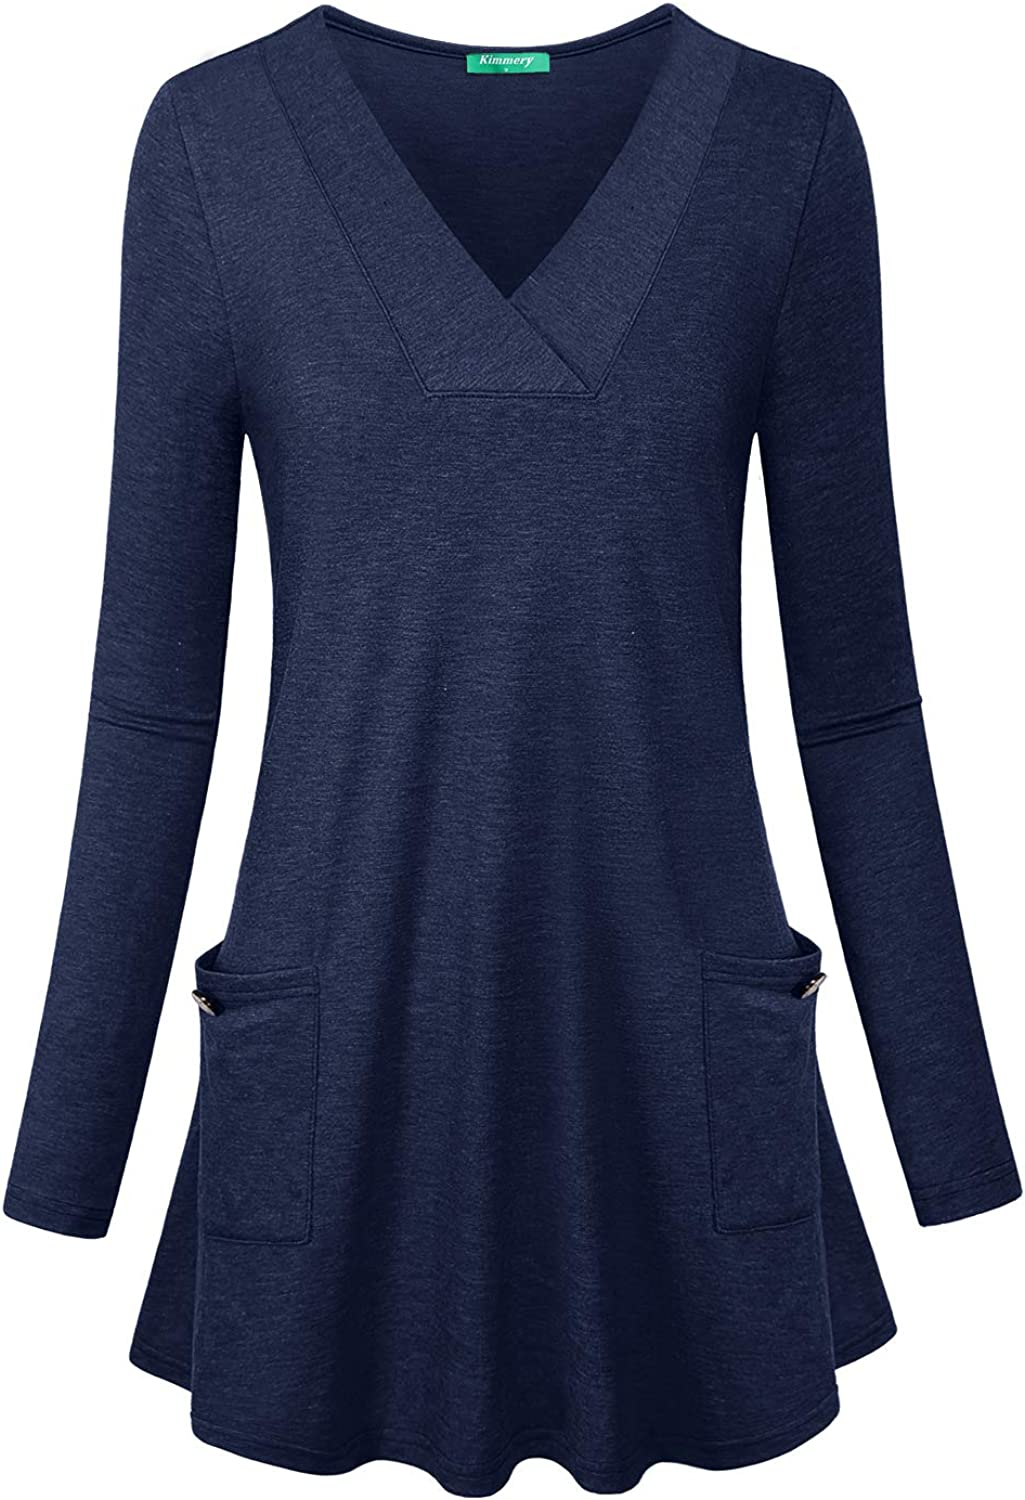 Kimmery Womens Long Sleeve V Neck Casual Flare Hem Tunic Top with Side Pockets